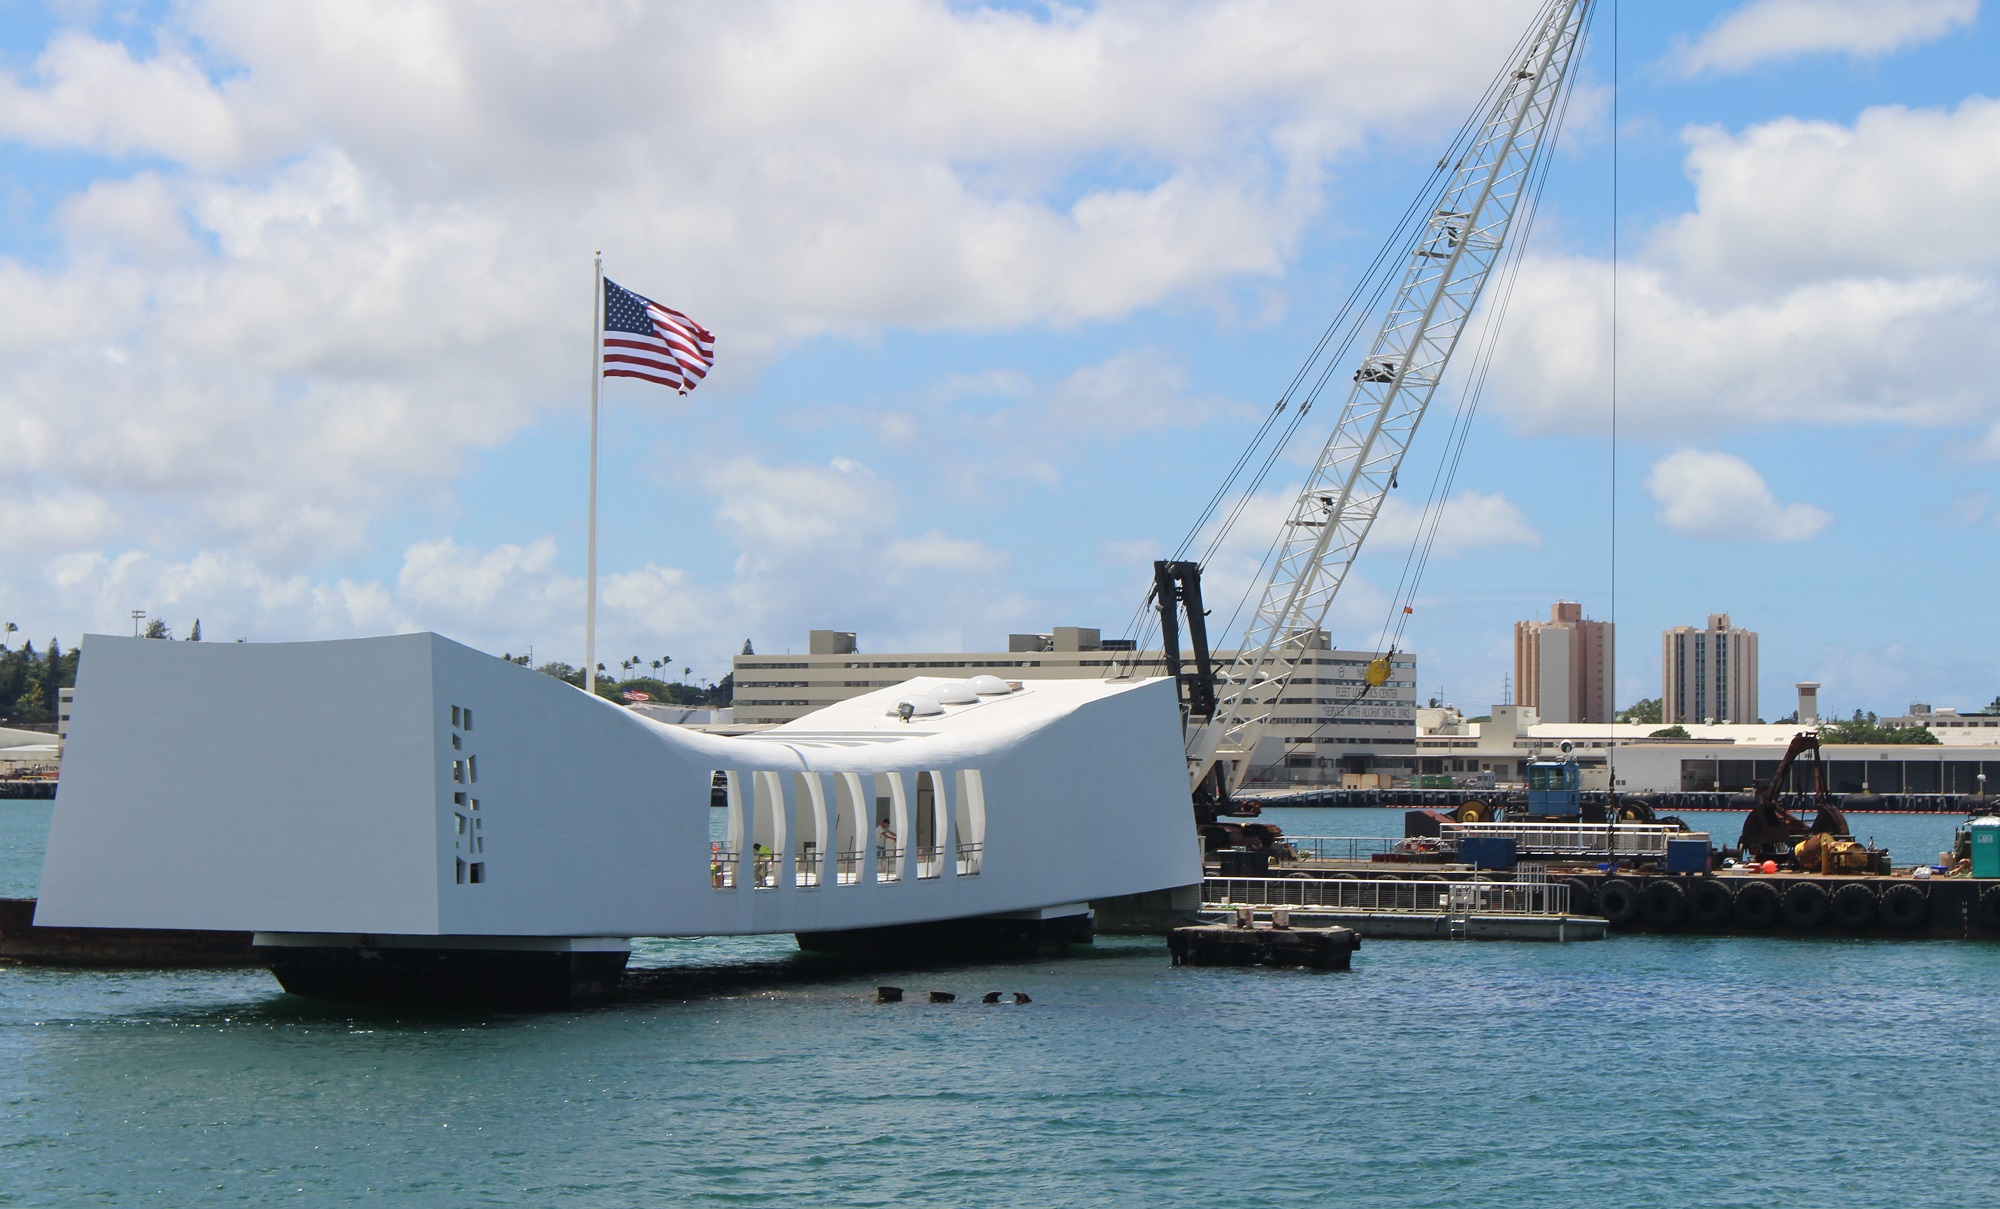 The USS Arizona Memorial and the new dock installation.